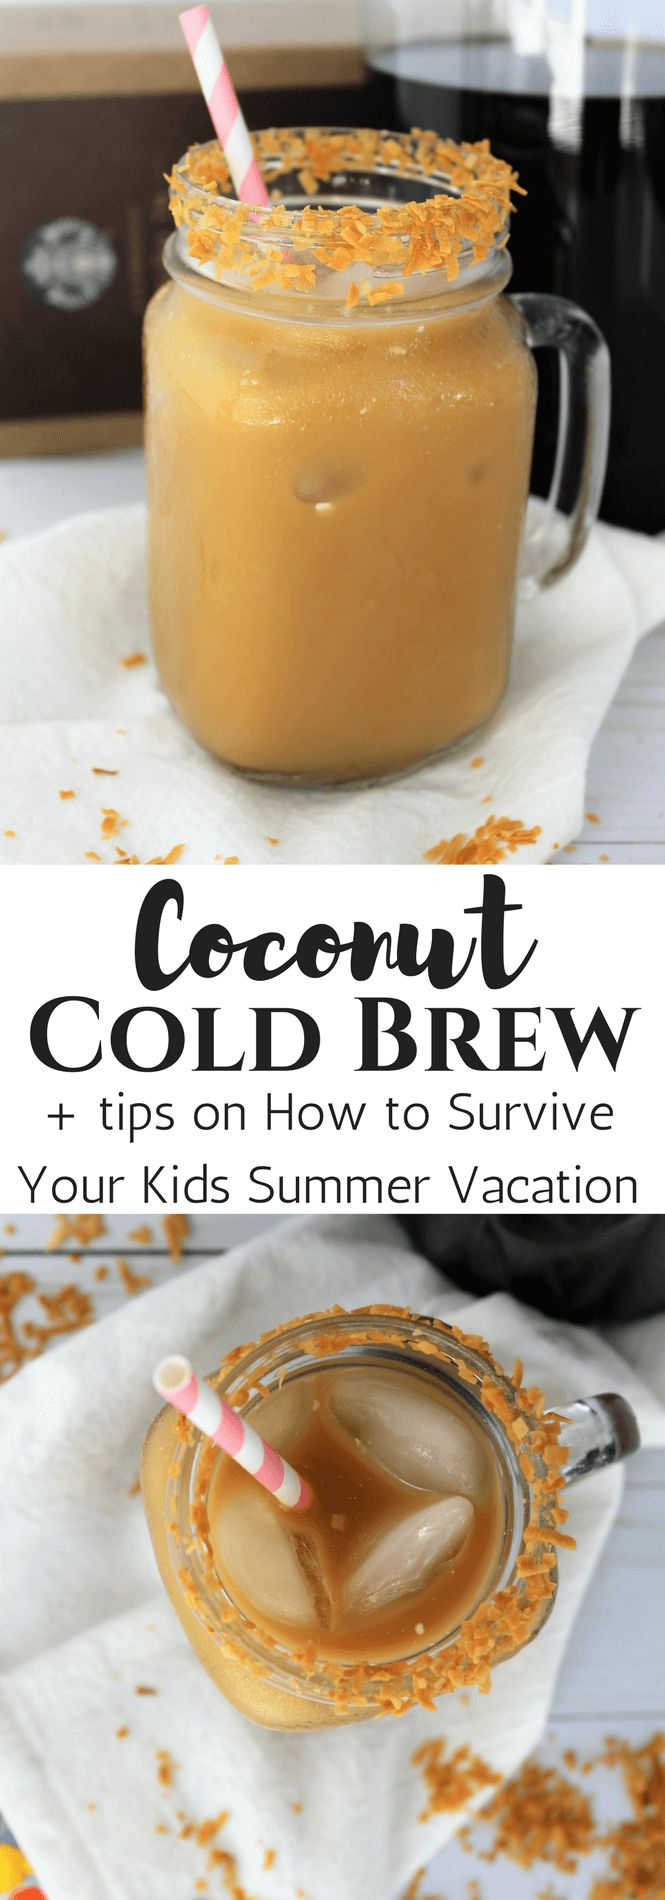 #ad #craftyourcool , We are making a delicious Coconut Cold Brew Coffee using @starbucks  available @walmart  to help you survive your kids summer vacation!